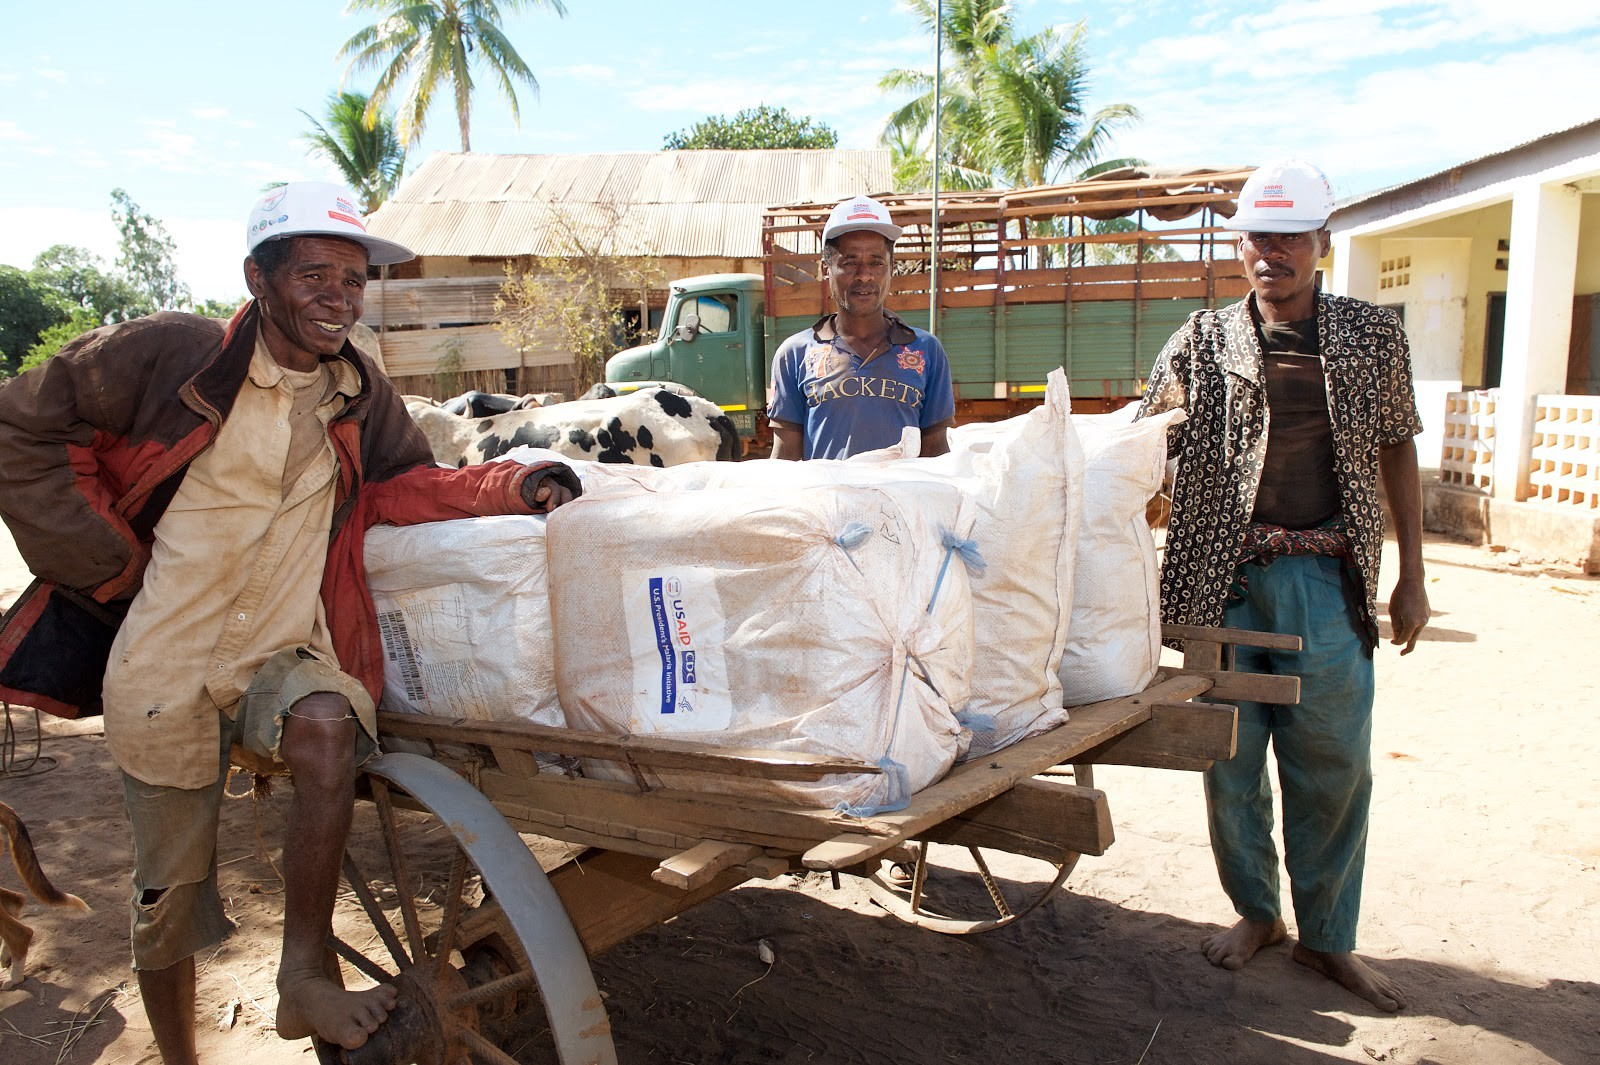 Malagasy men load malaria bed nets onto a cart in preparation for distribution. / Lan Andrian, USAID Global Health Supply Chain Program — Procurement and Supply Management